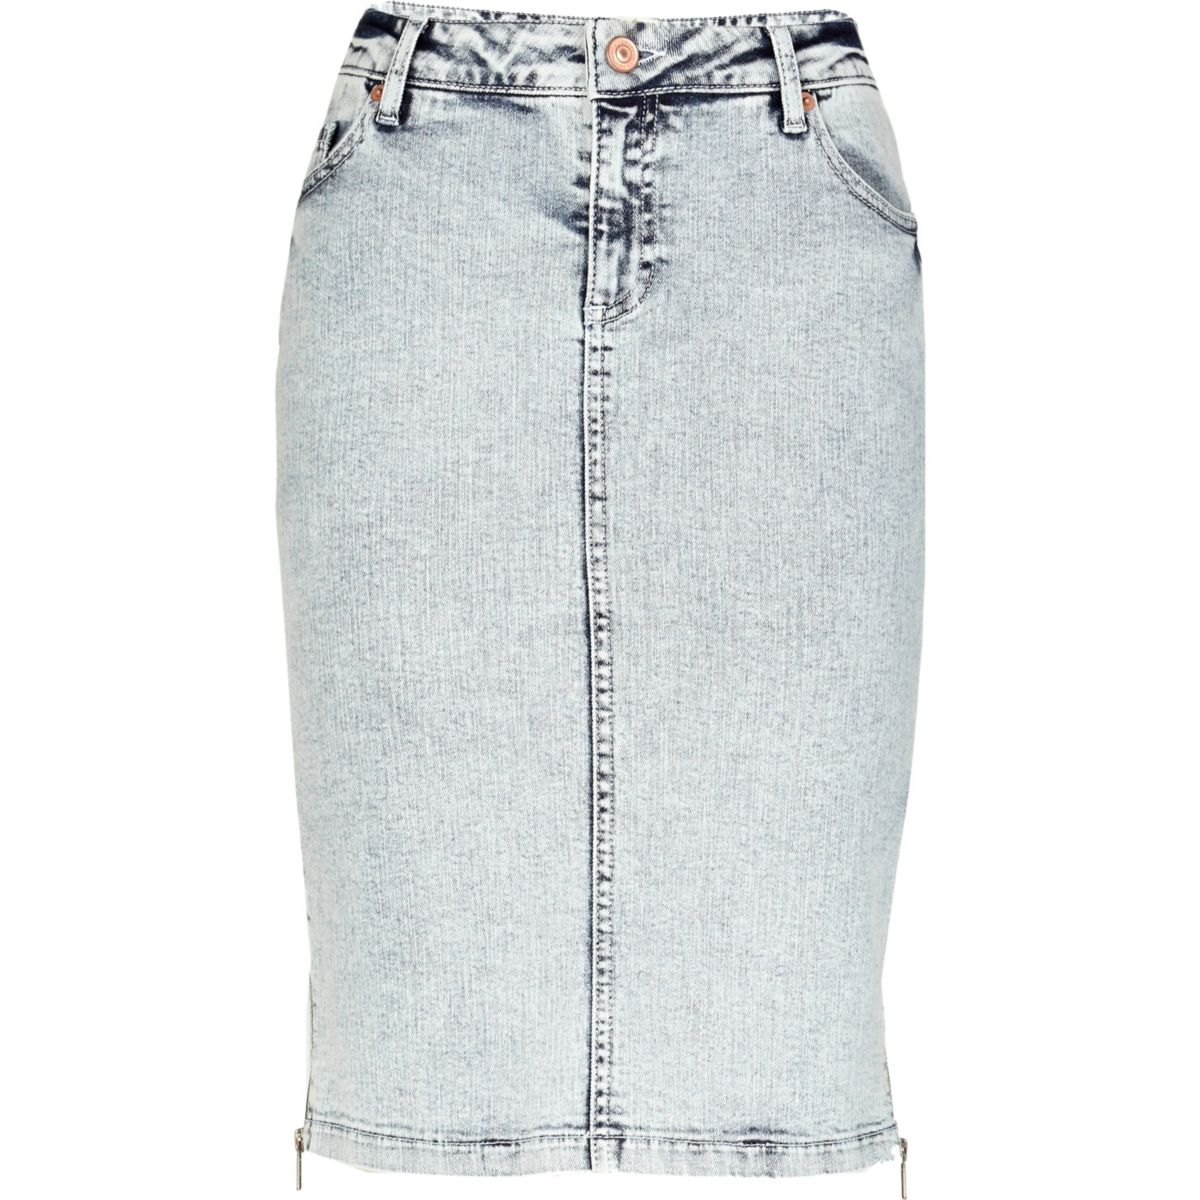 light acid wash denim pencil skirt skirts sale